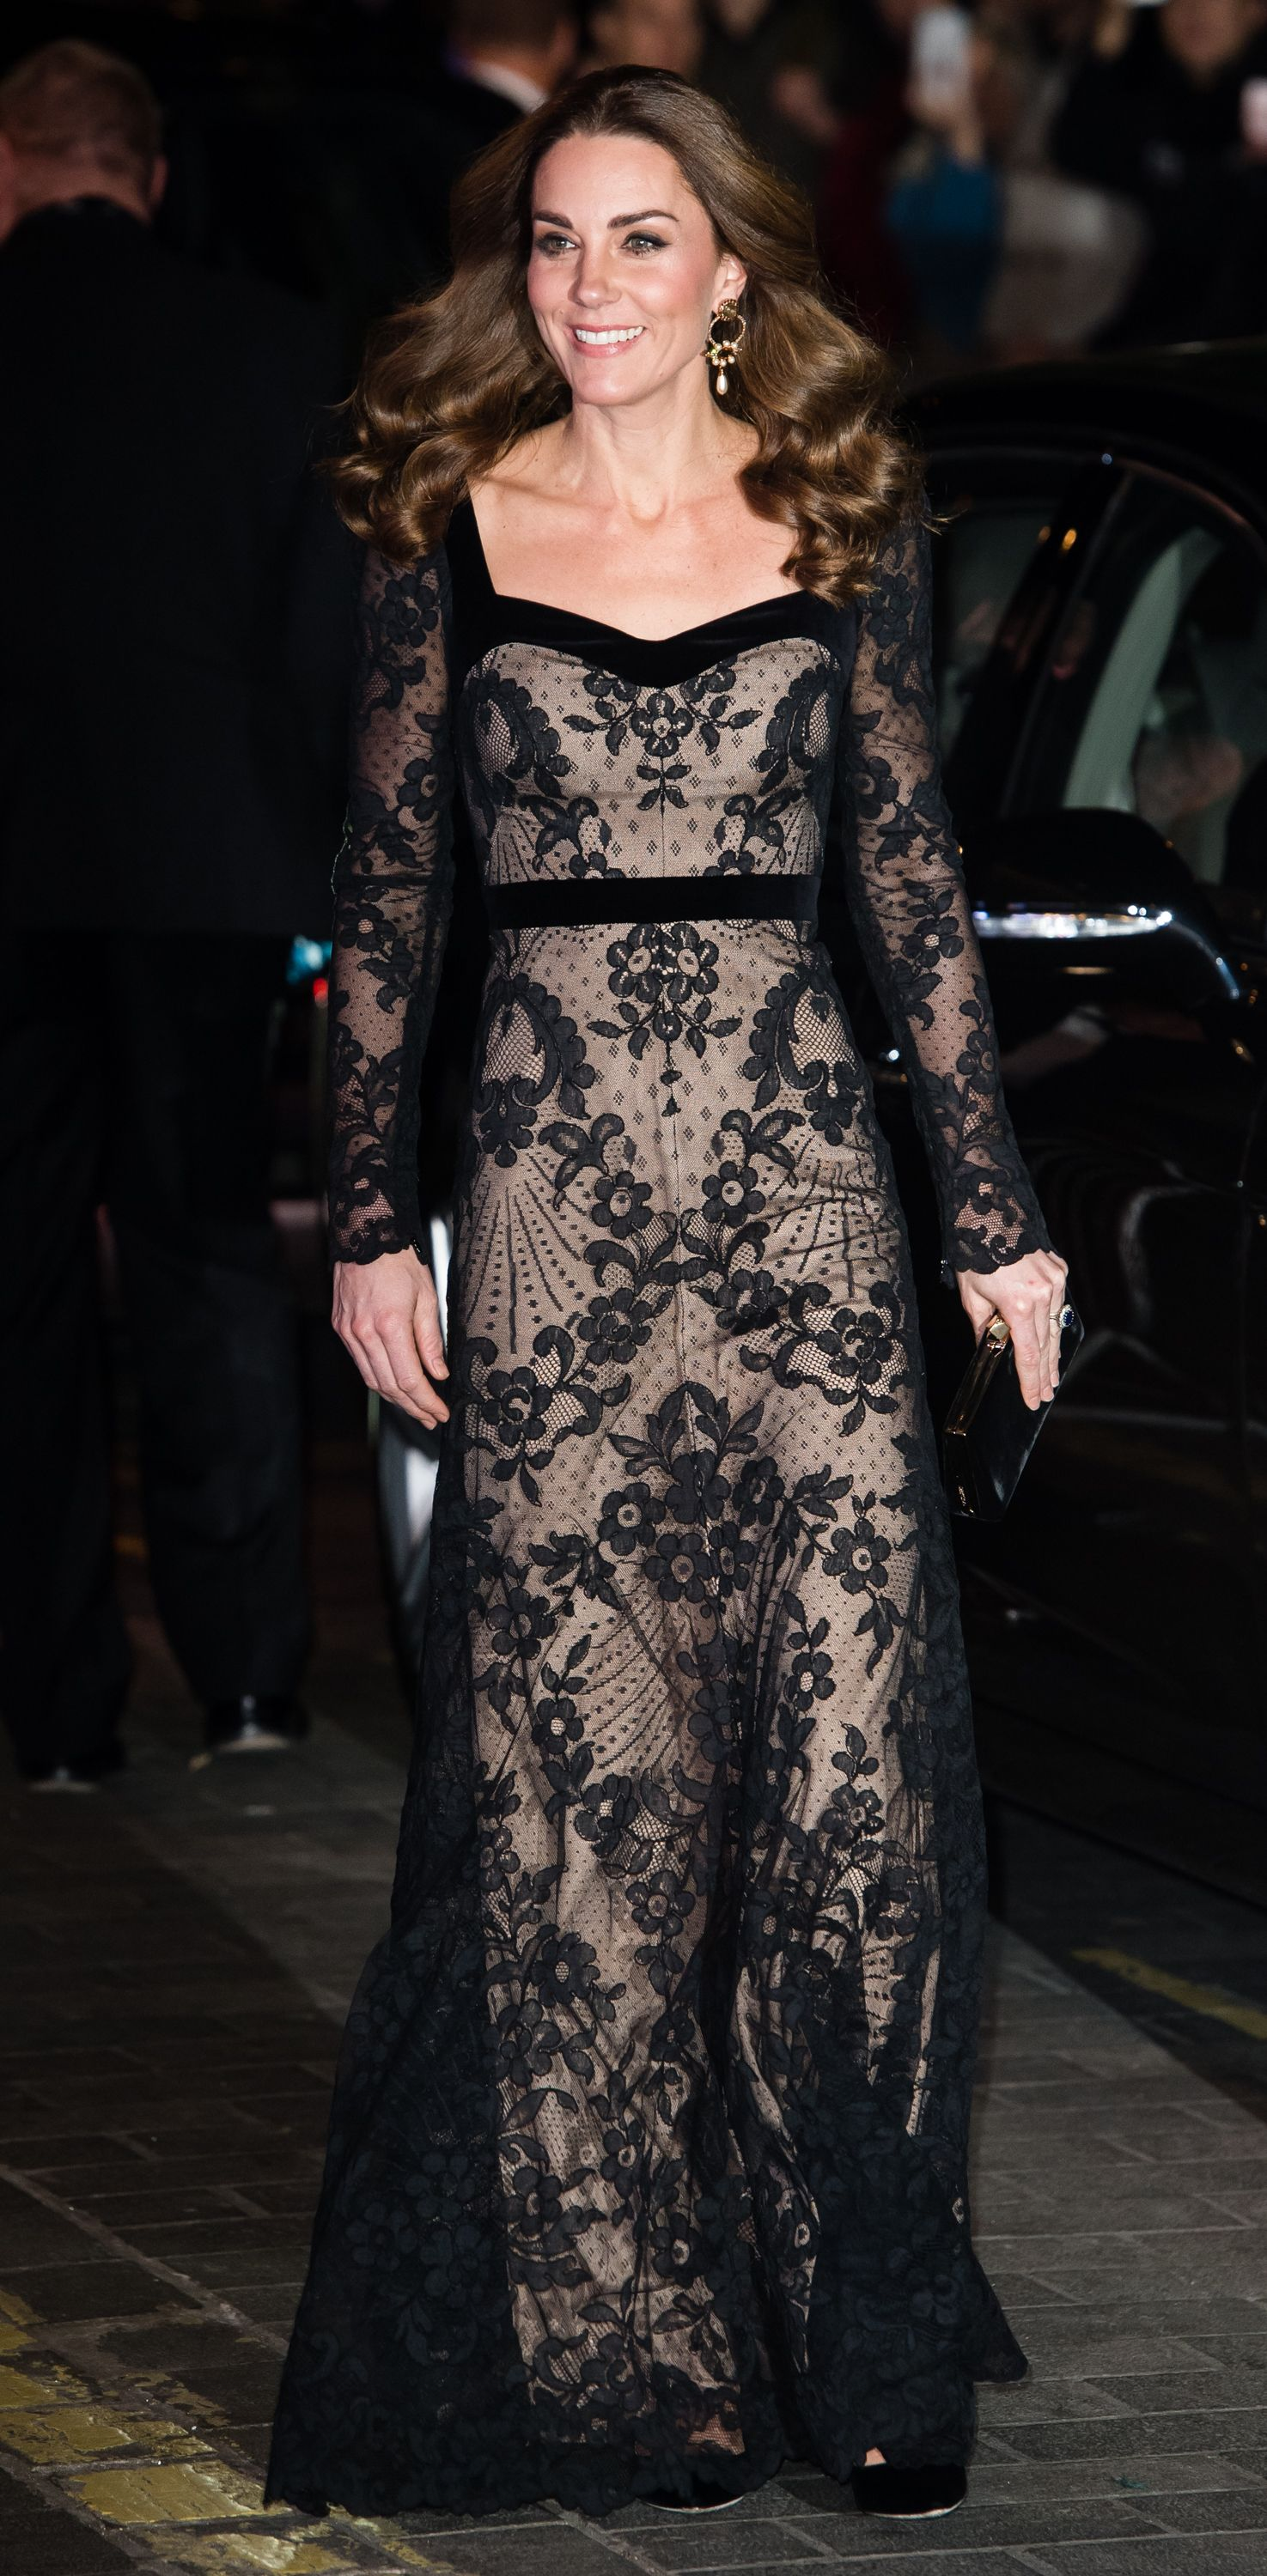 Kate Middleton wears a sheer black lace gown to the Royal Variety Performance